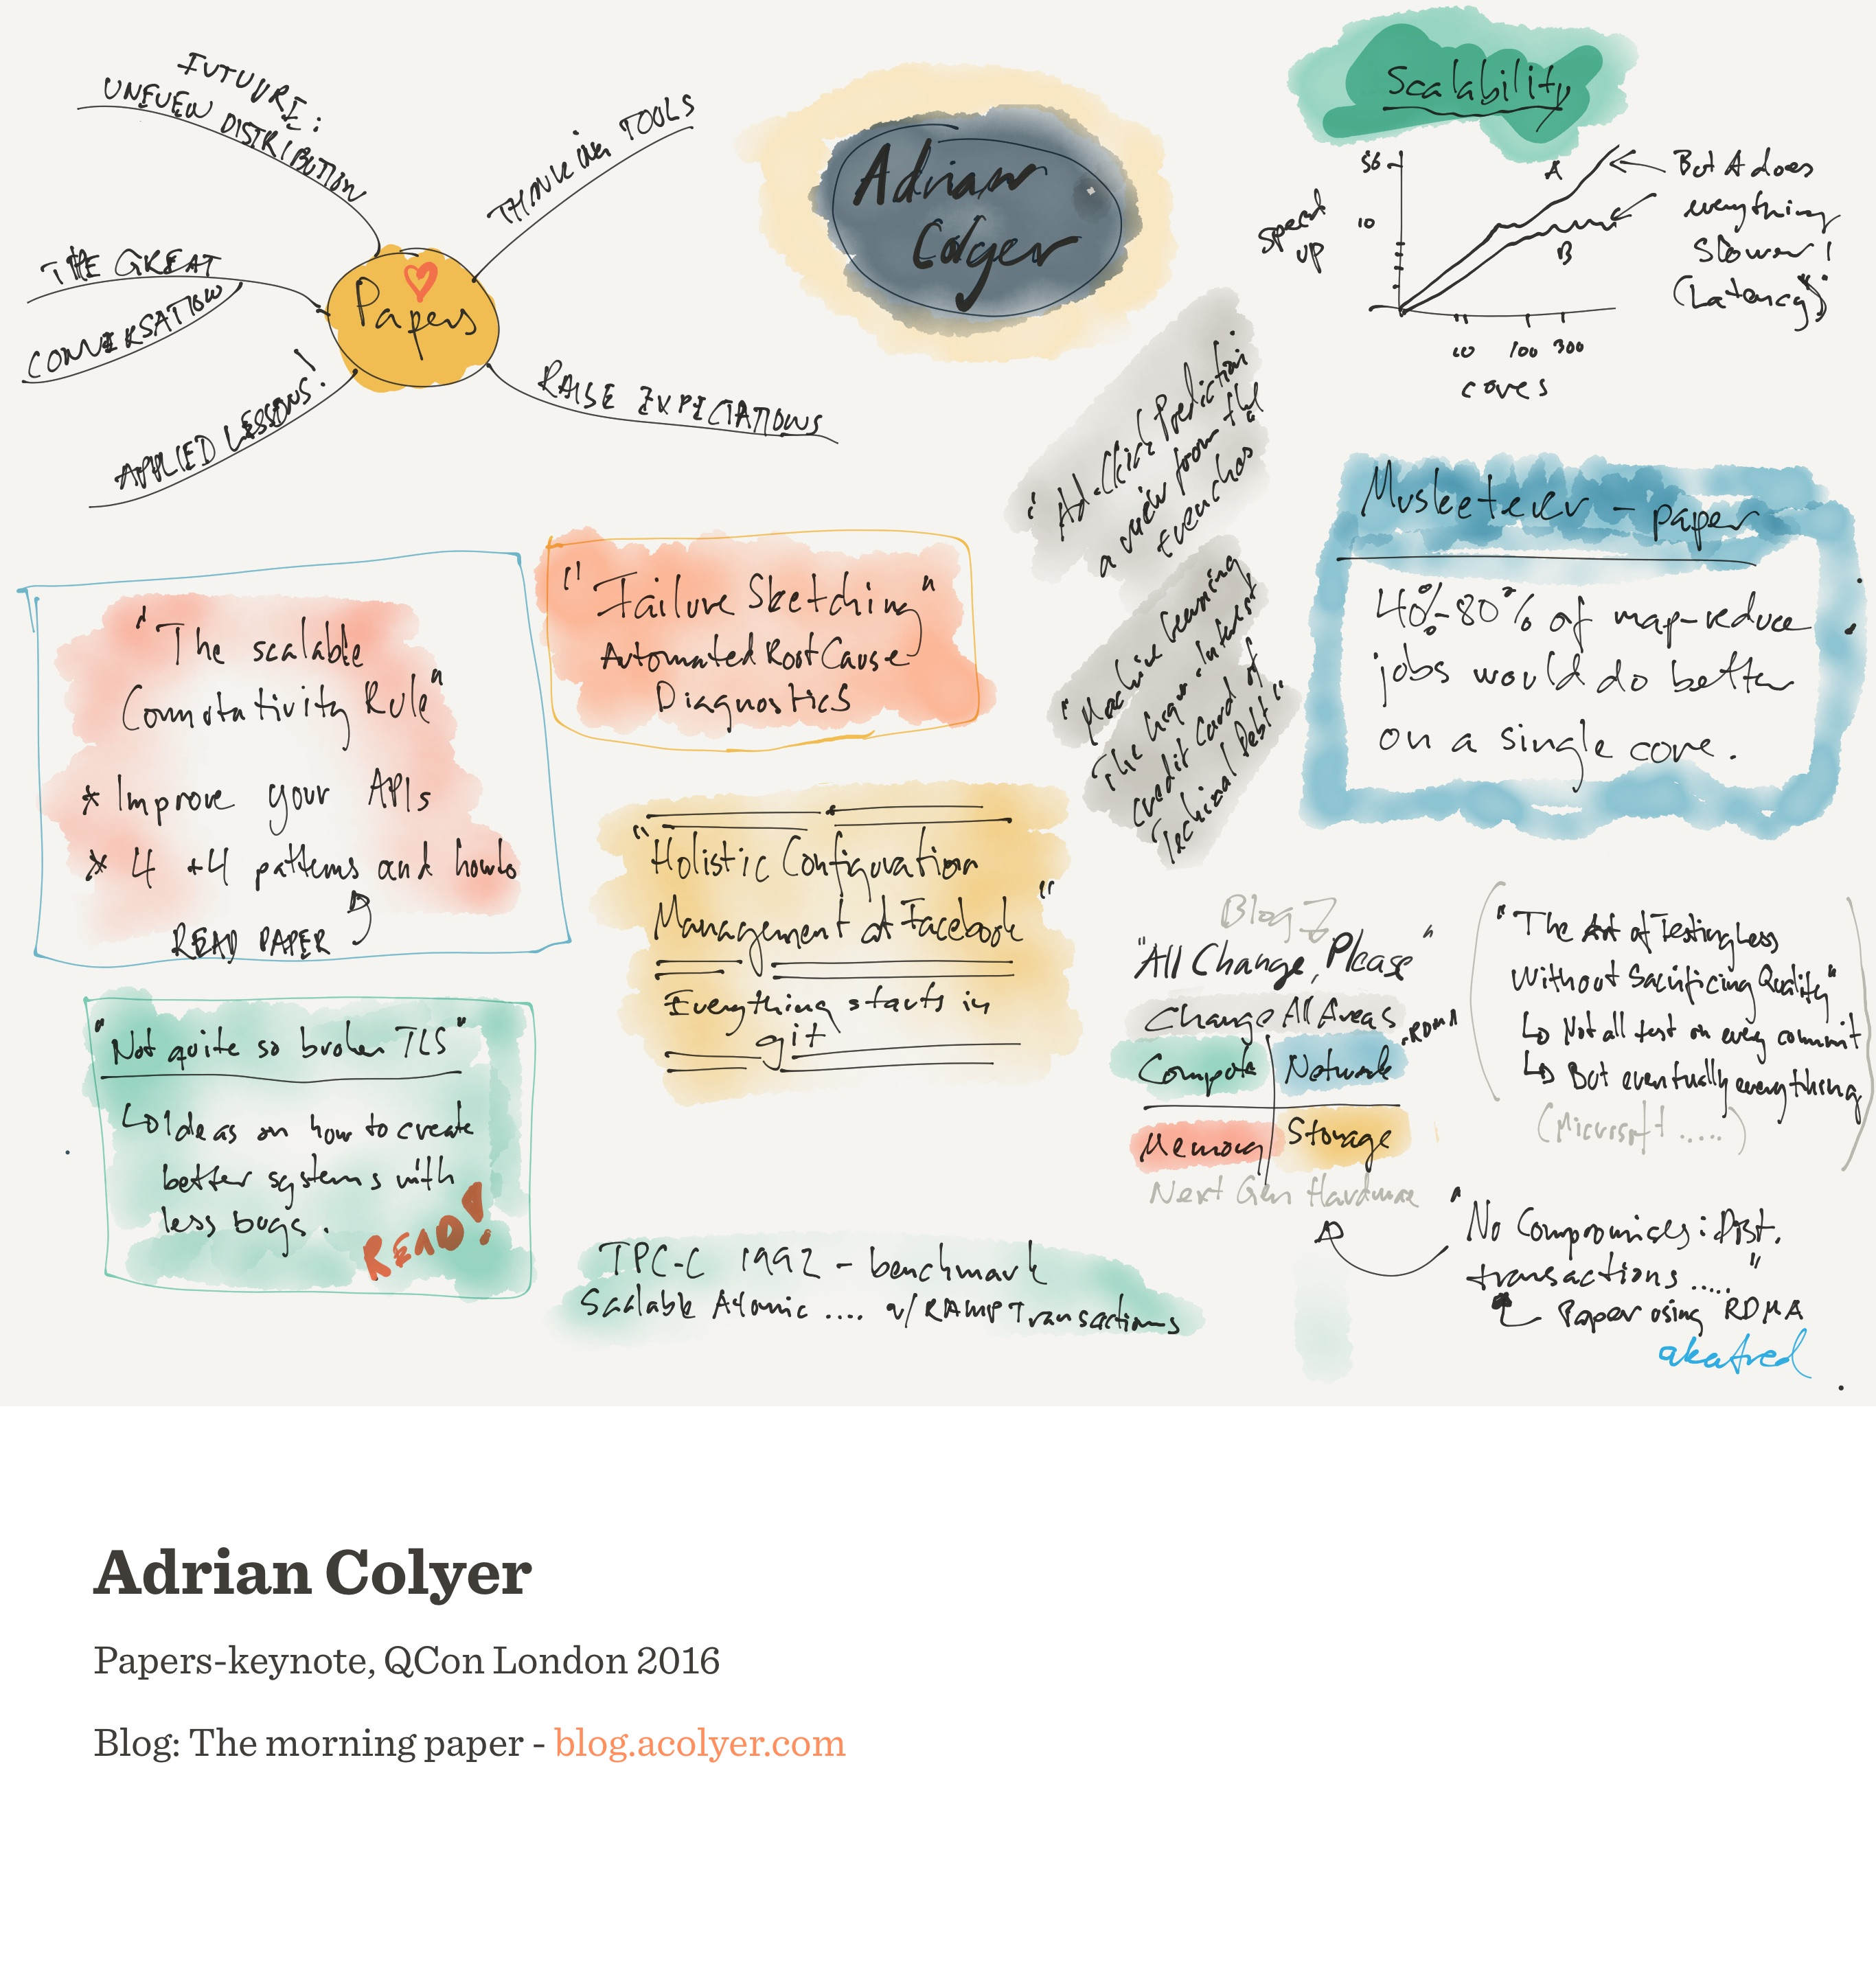 Notes from Unevenly Distributed (Adrian Colyer)